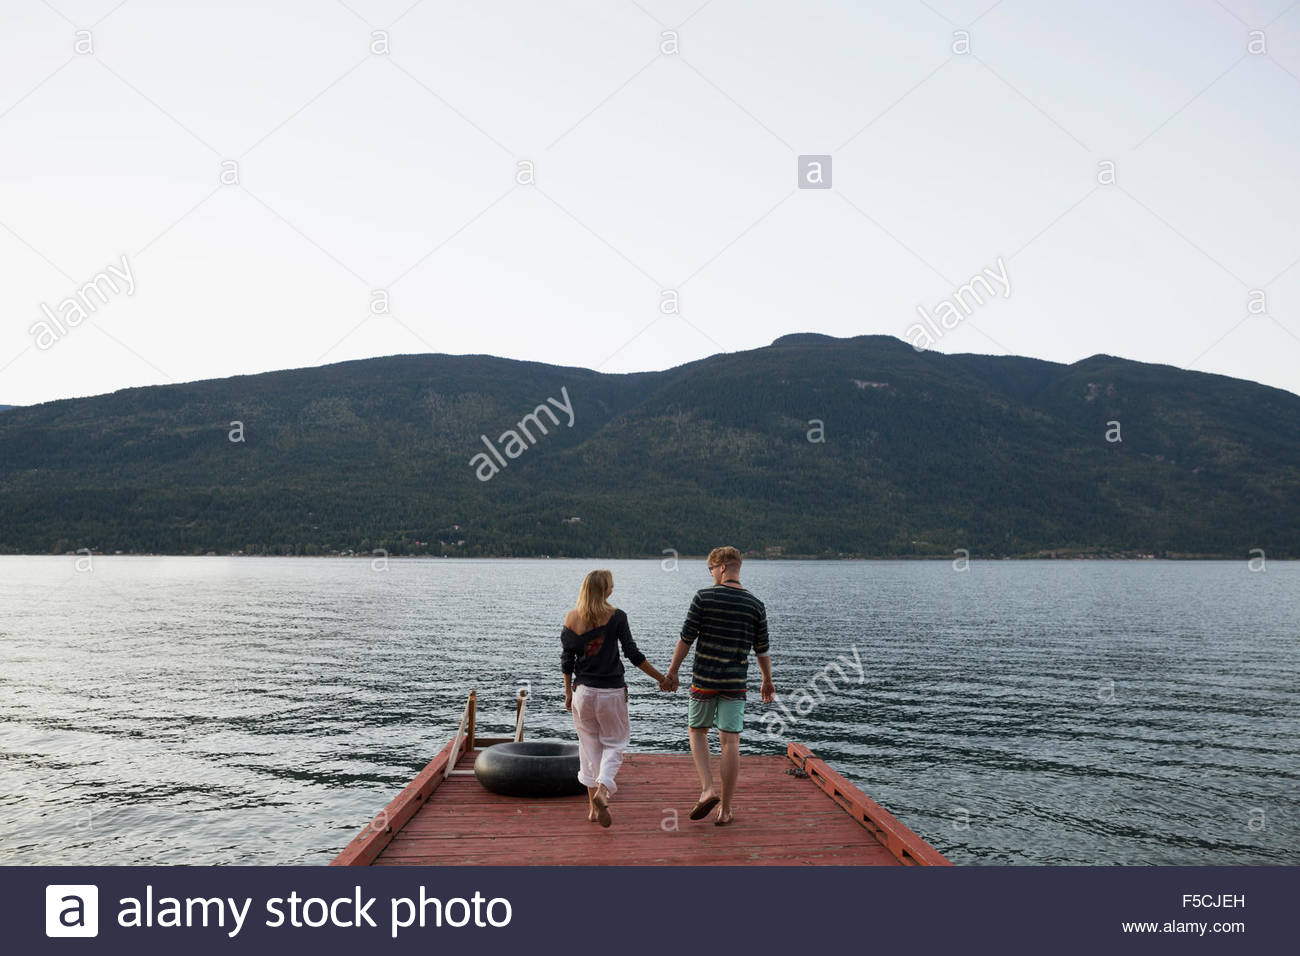 Young couple holding hands walking on lake dock - Stock Image